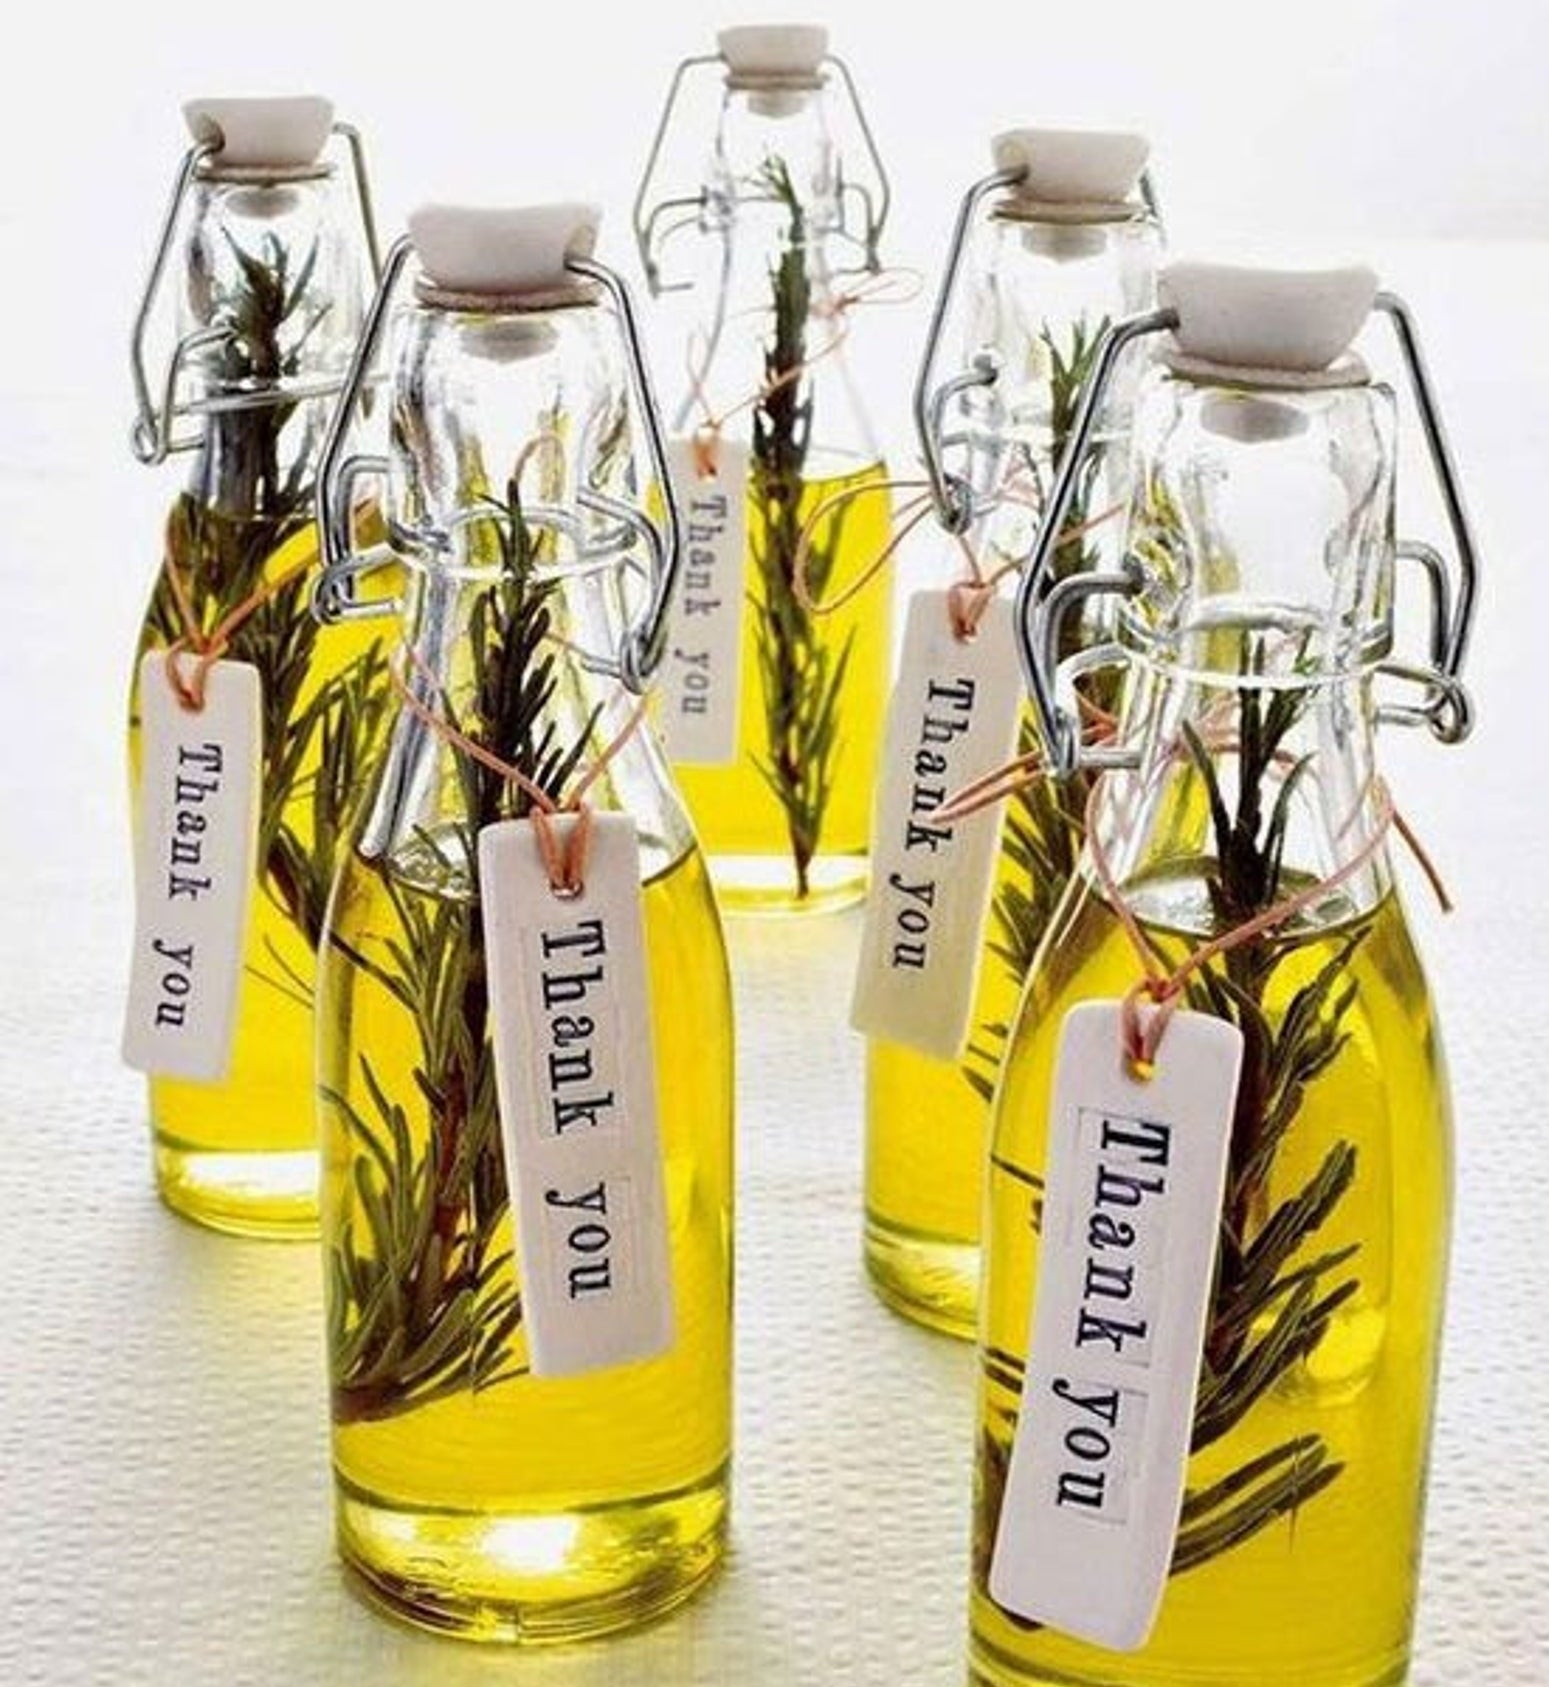 """The olive oil in bottles with a tag around the neck that says """"Thank you"""""""